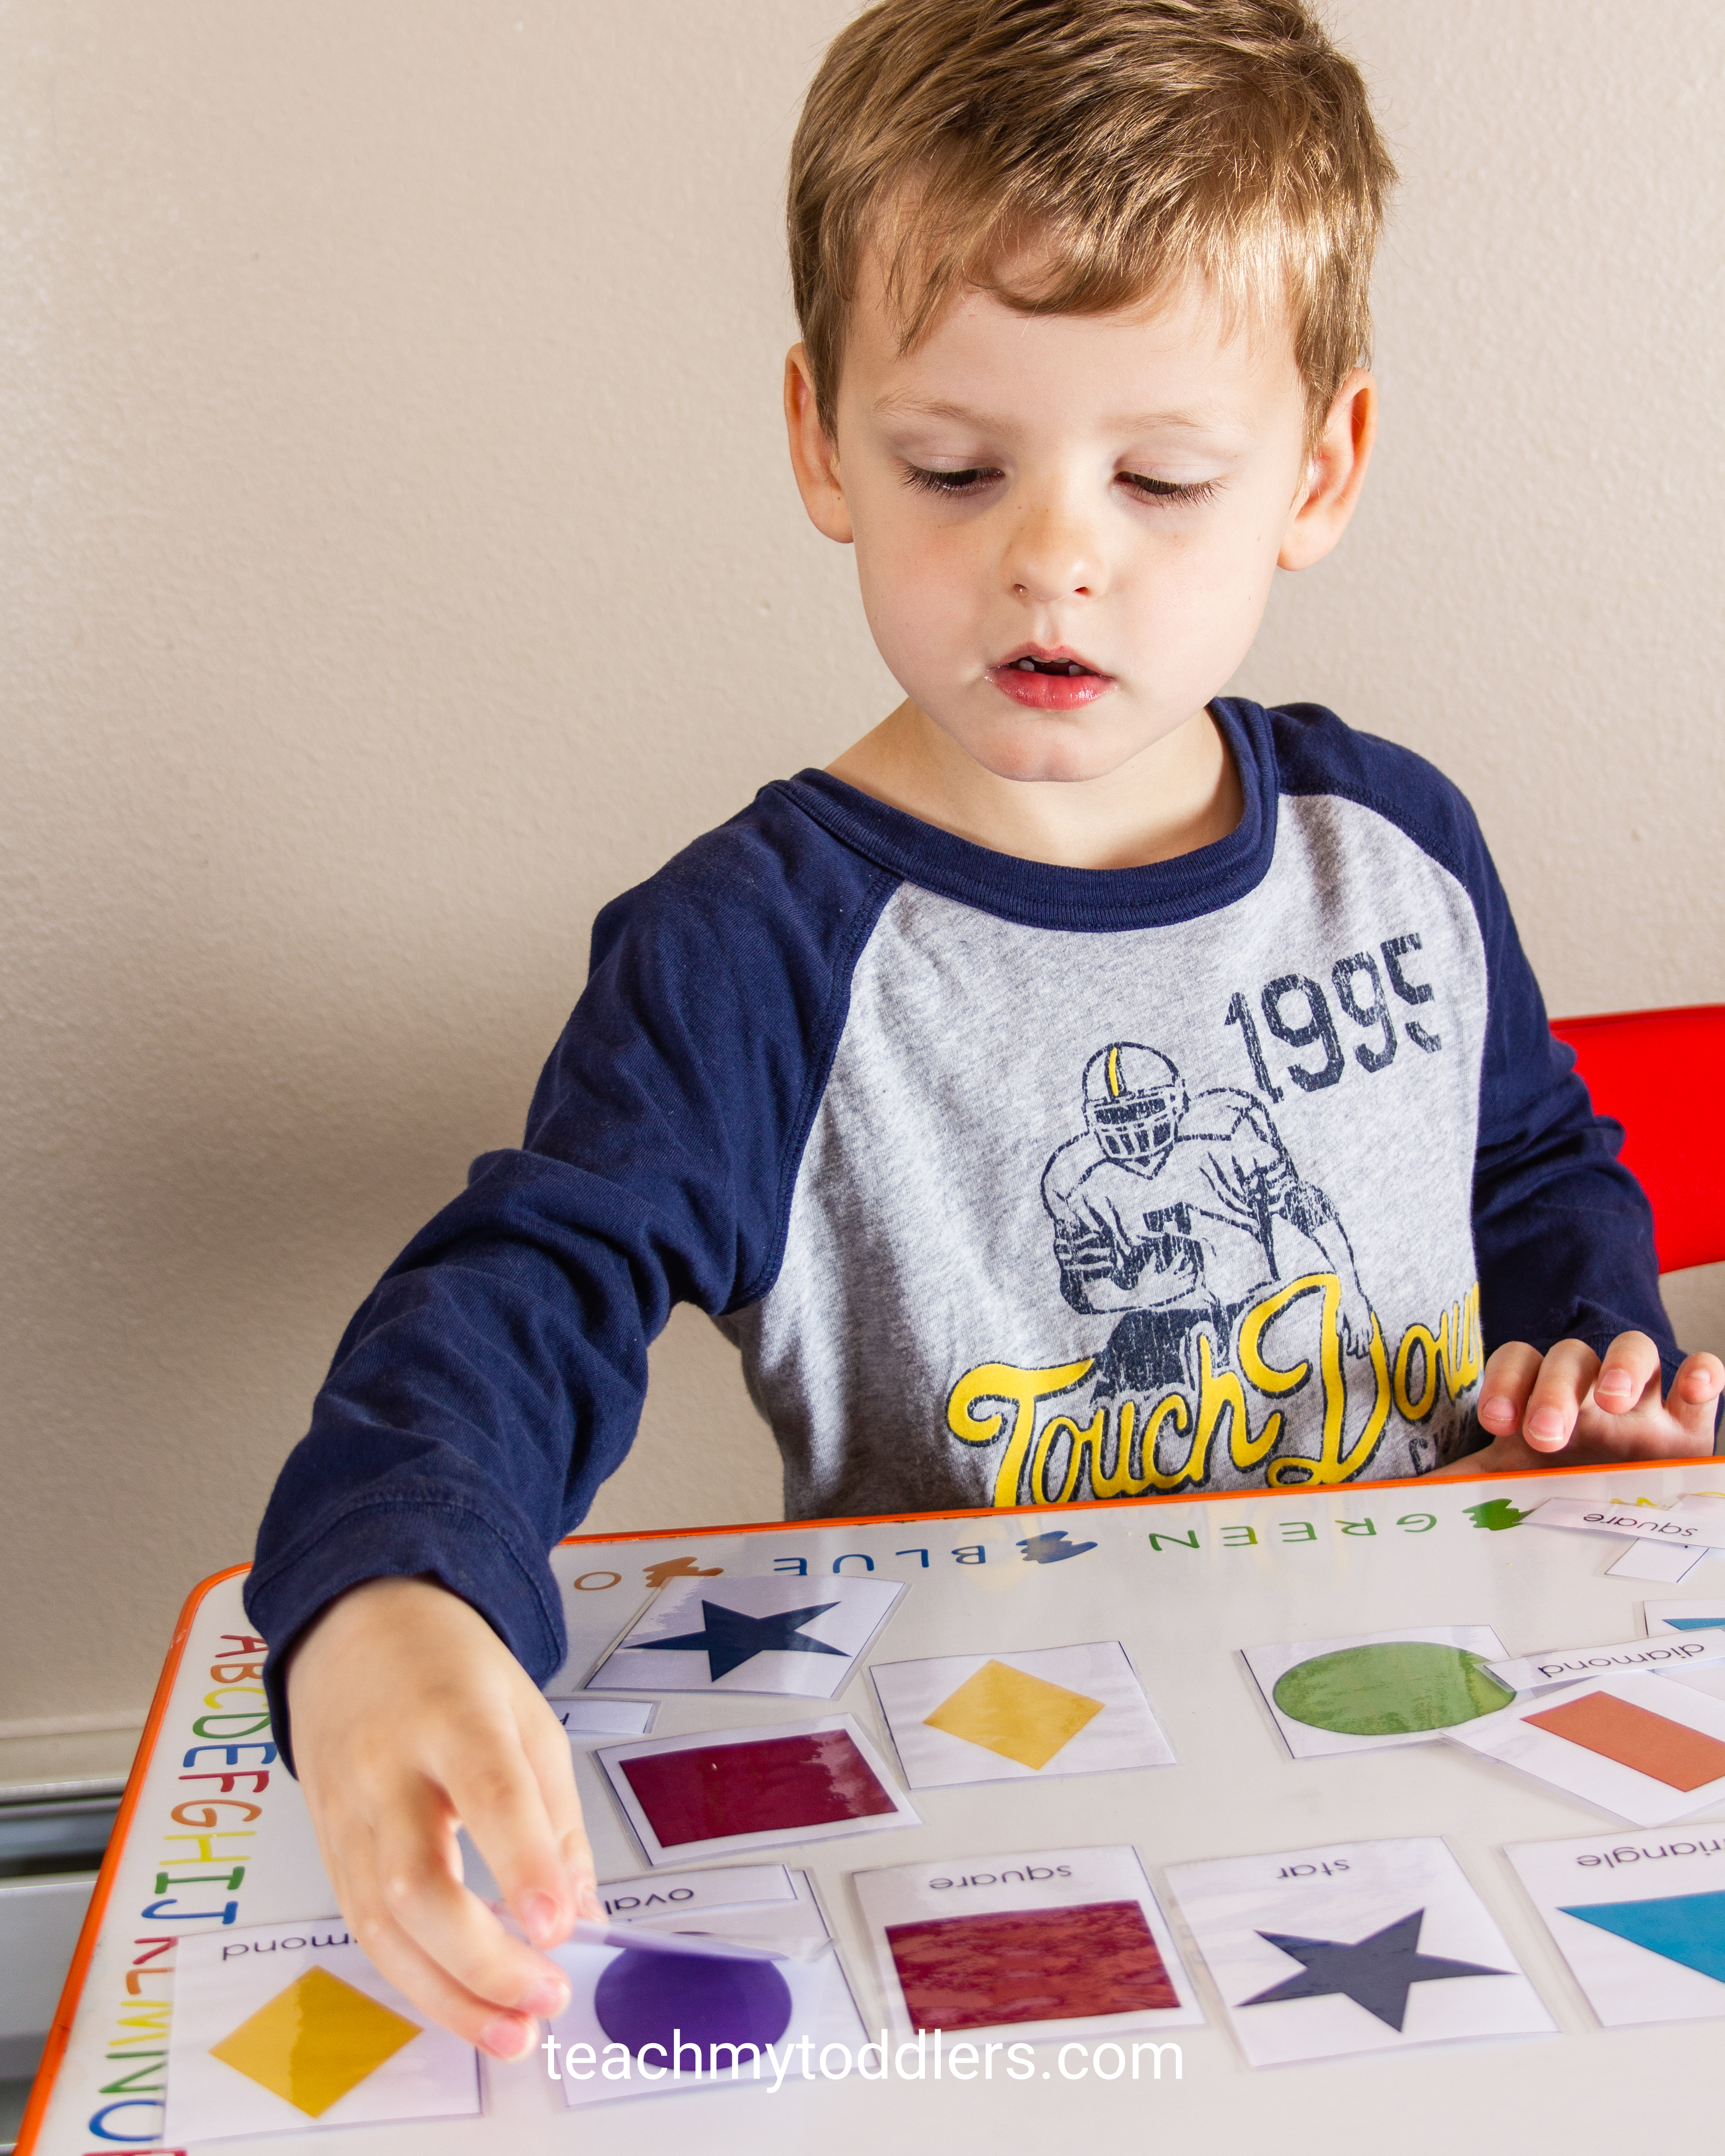 Find out how to use this shape cards activity to teach your preschoolers shapes